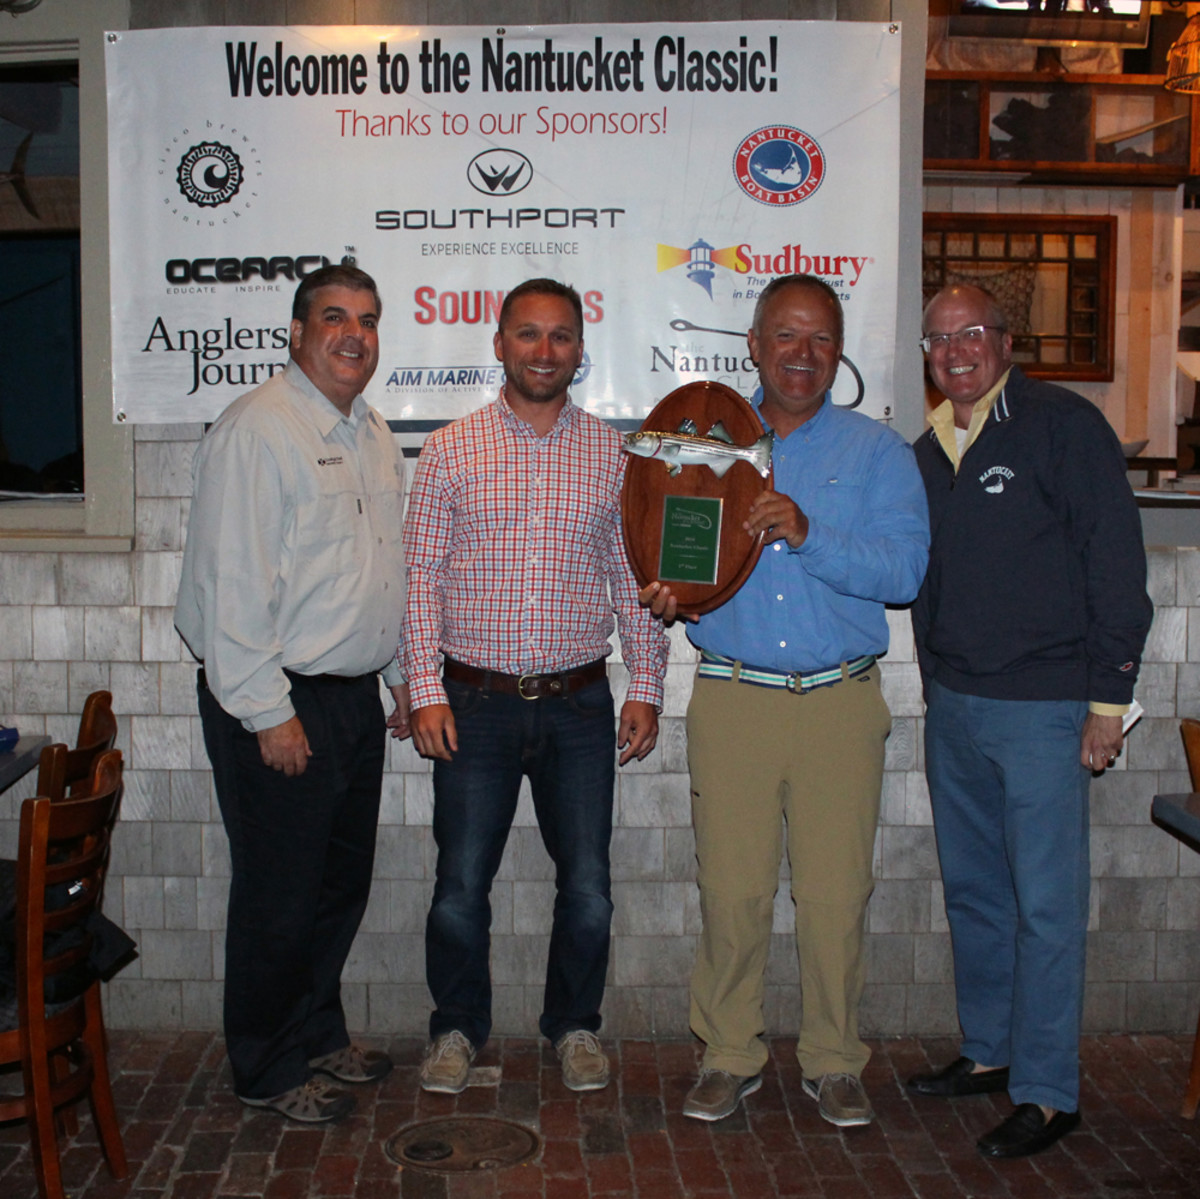 The Nantucket Classic tournament, sponsored by Southport and Soundings, was held Sept. 23-24. Shown are David Rose, (left), angler on the winning boat Summer Place (a Southport 33 FE); Southport's marketing manager, Jonathan Kirby; first-place winner and Summer Place owner Rob Miller; and Soundings publisher Paul Smith.